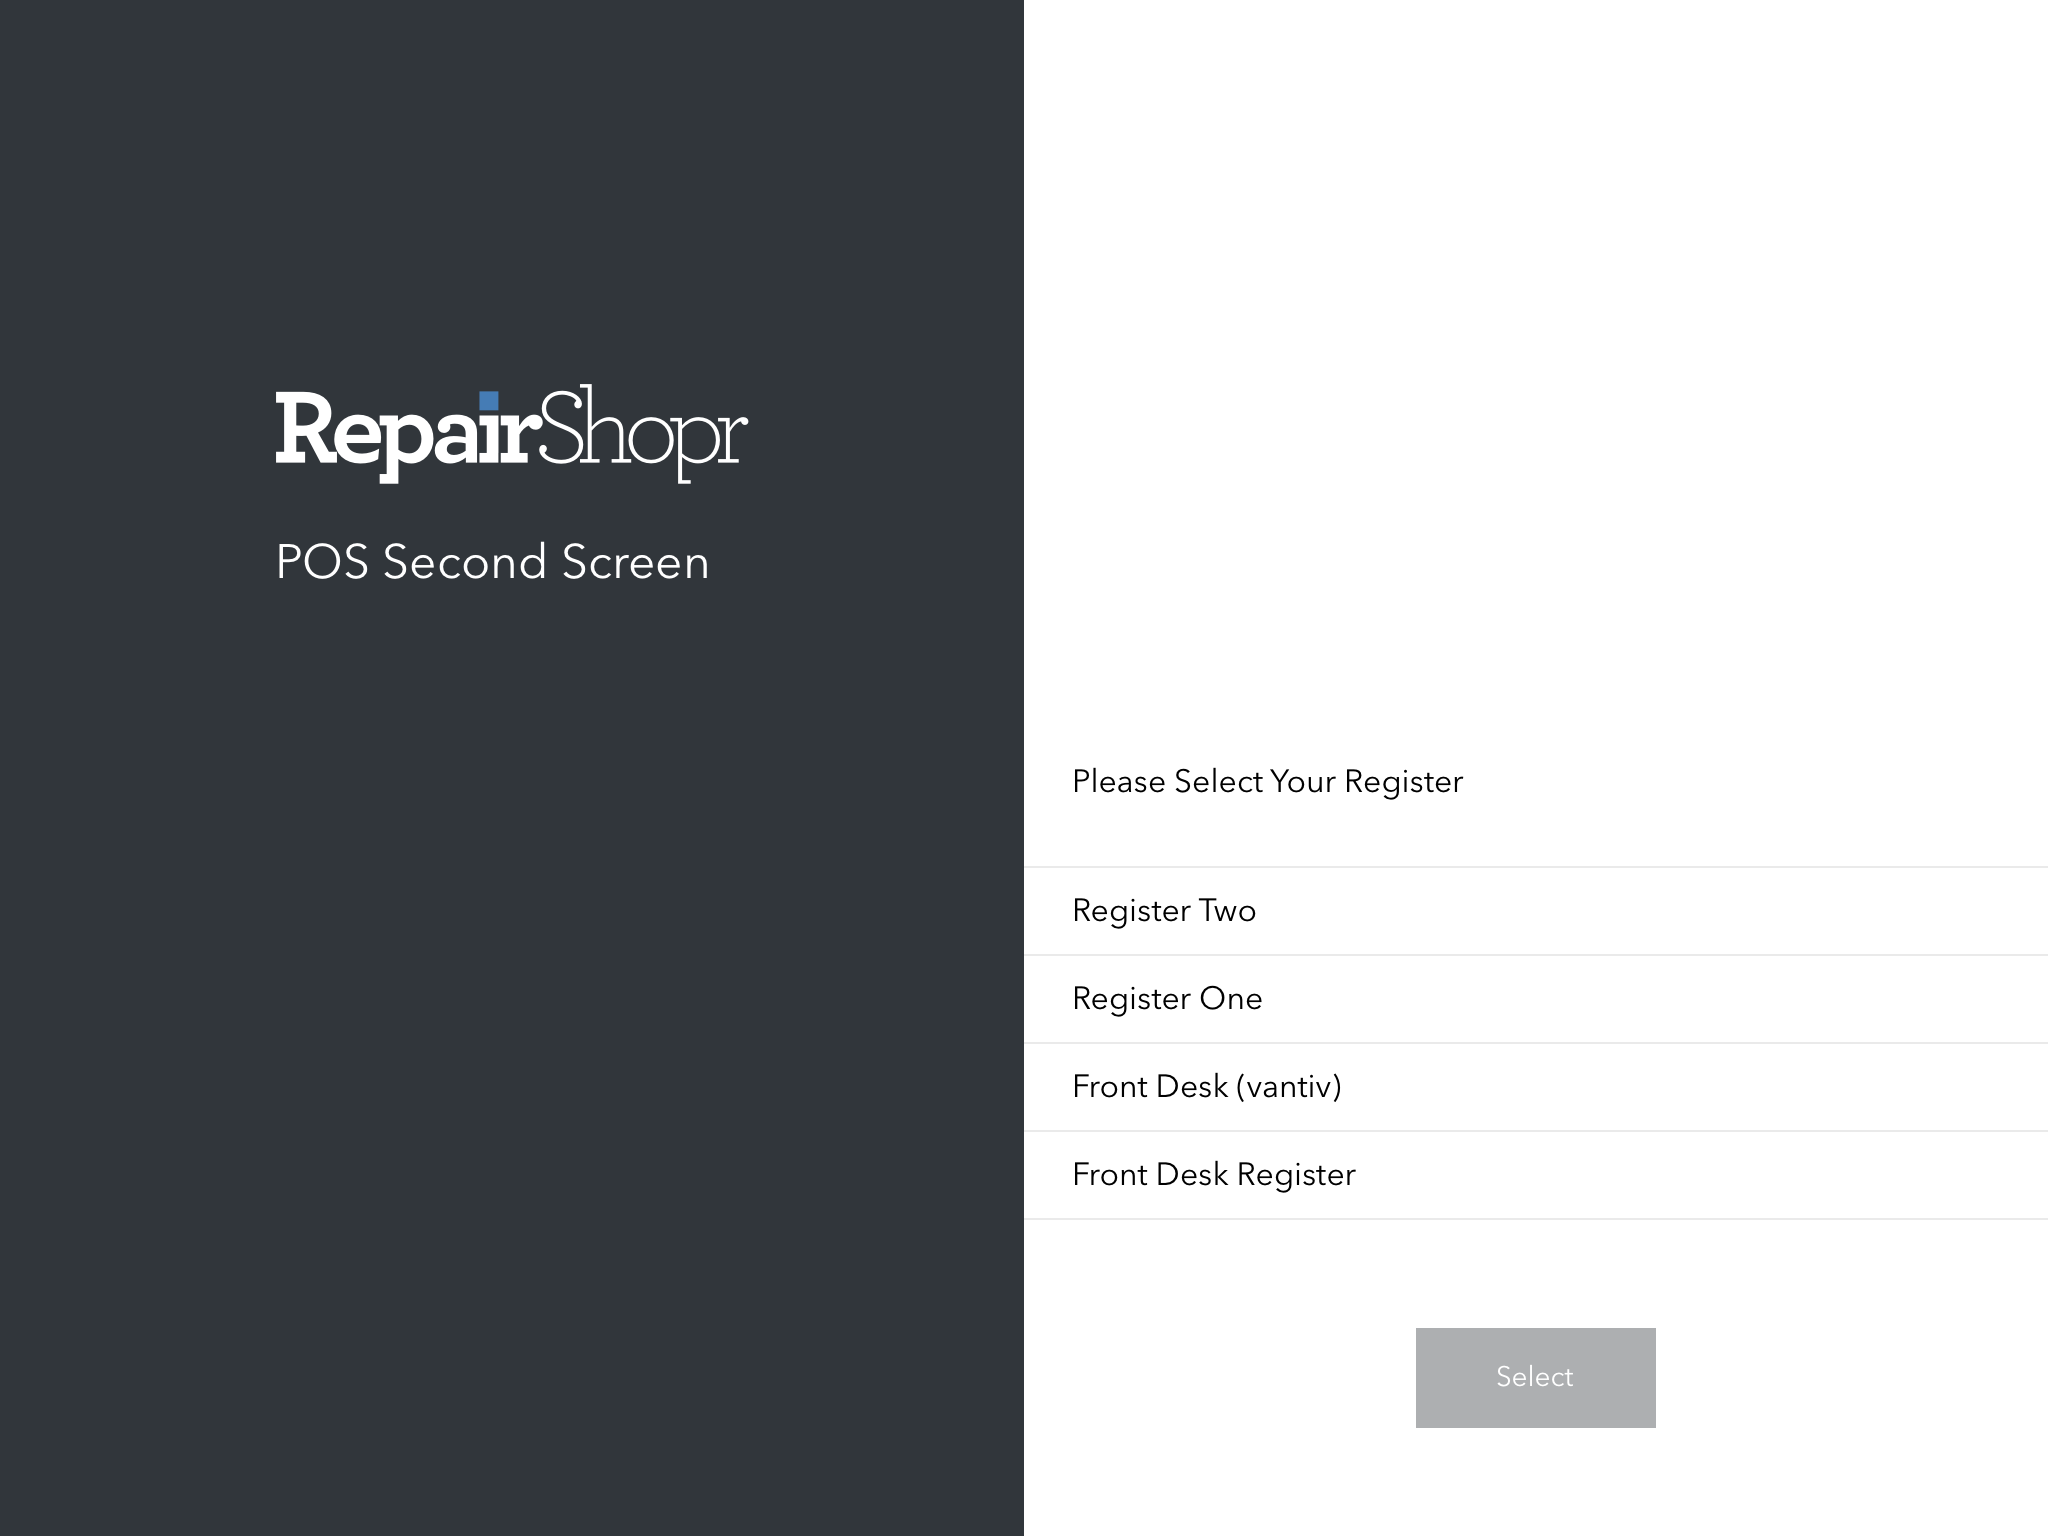 Choosing a Register in the POS Second Screen App